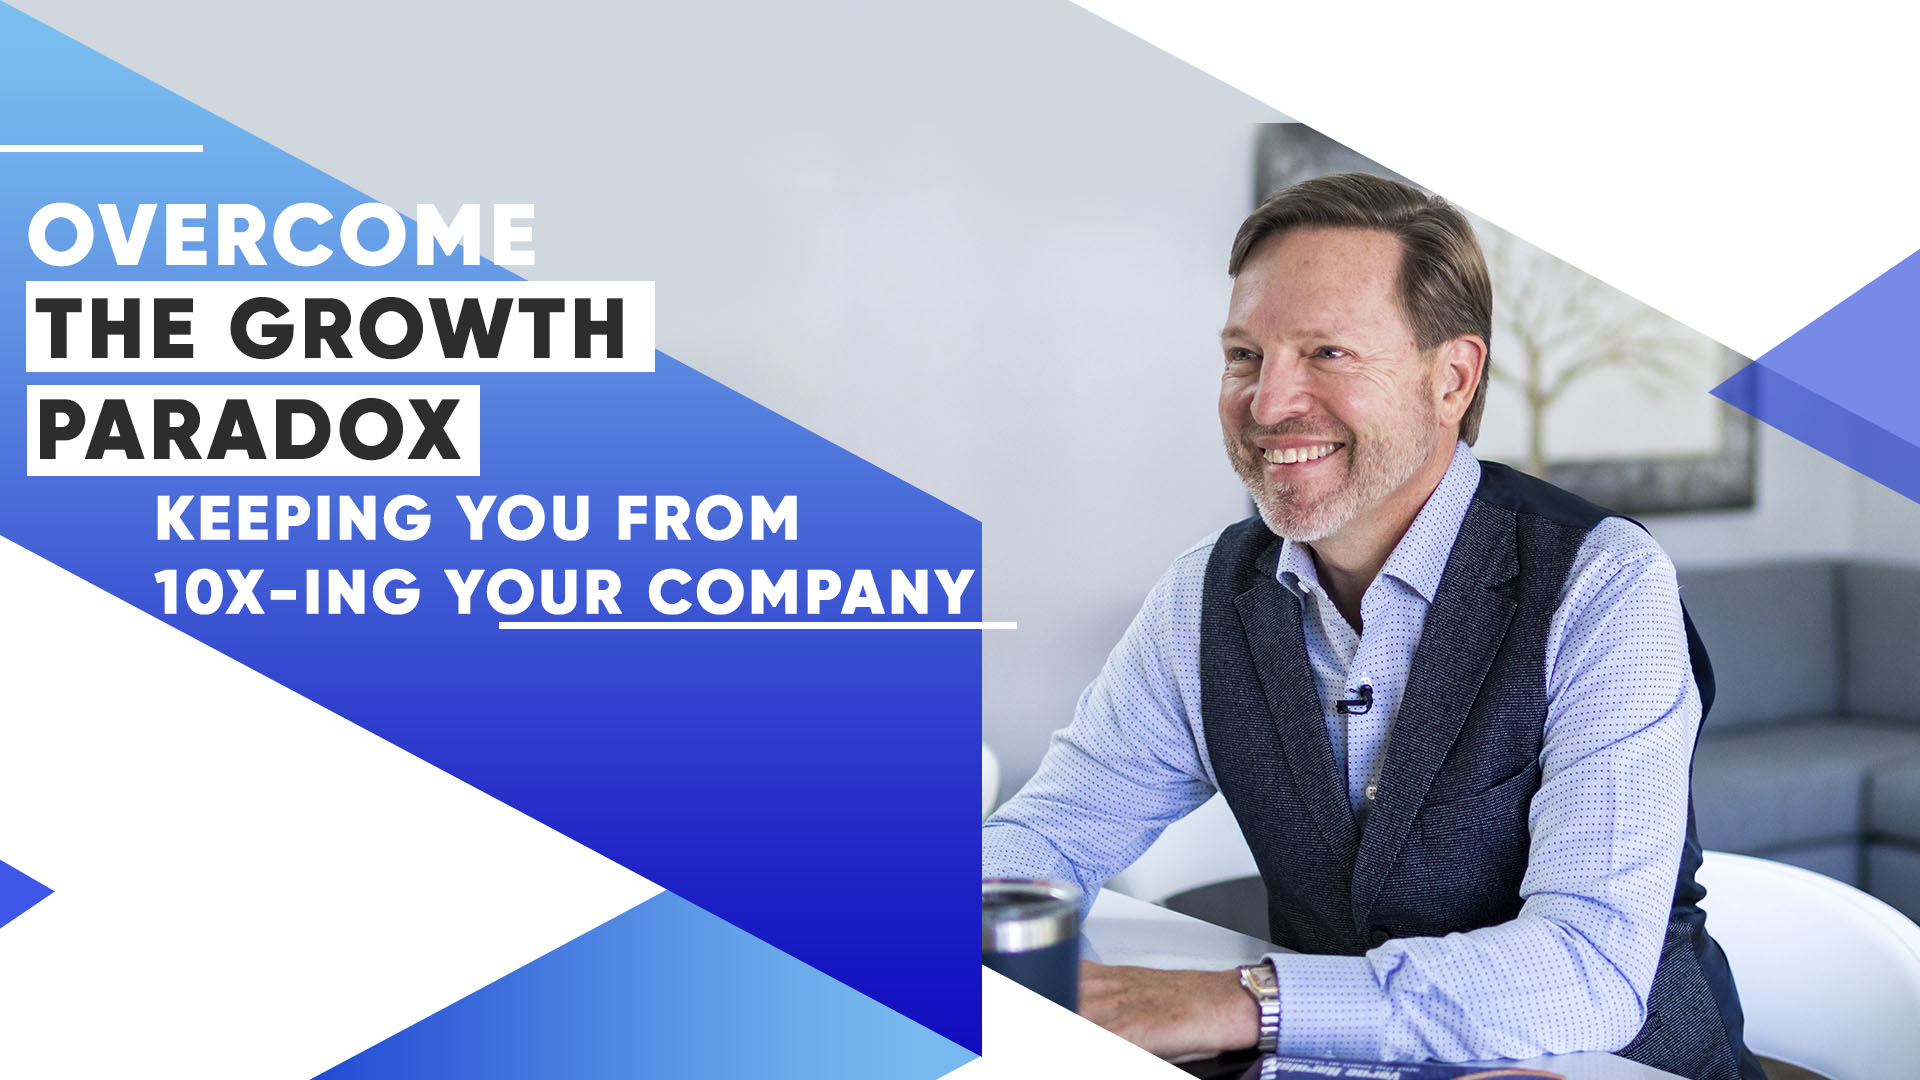 Overcome the Growth Paradox Keeping You From 10X-ing Your Company